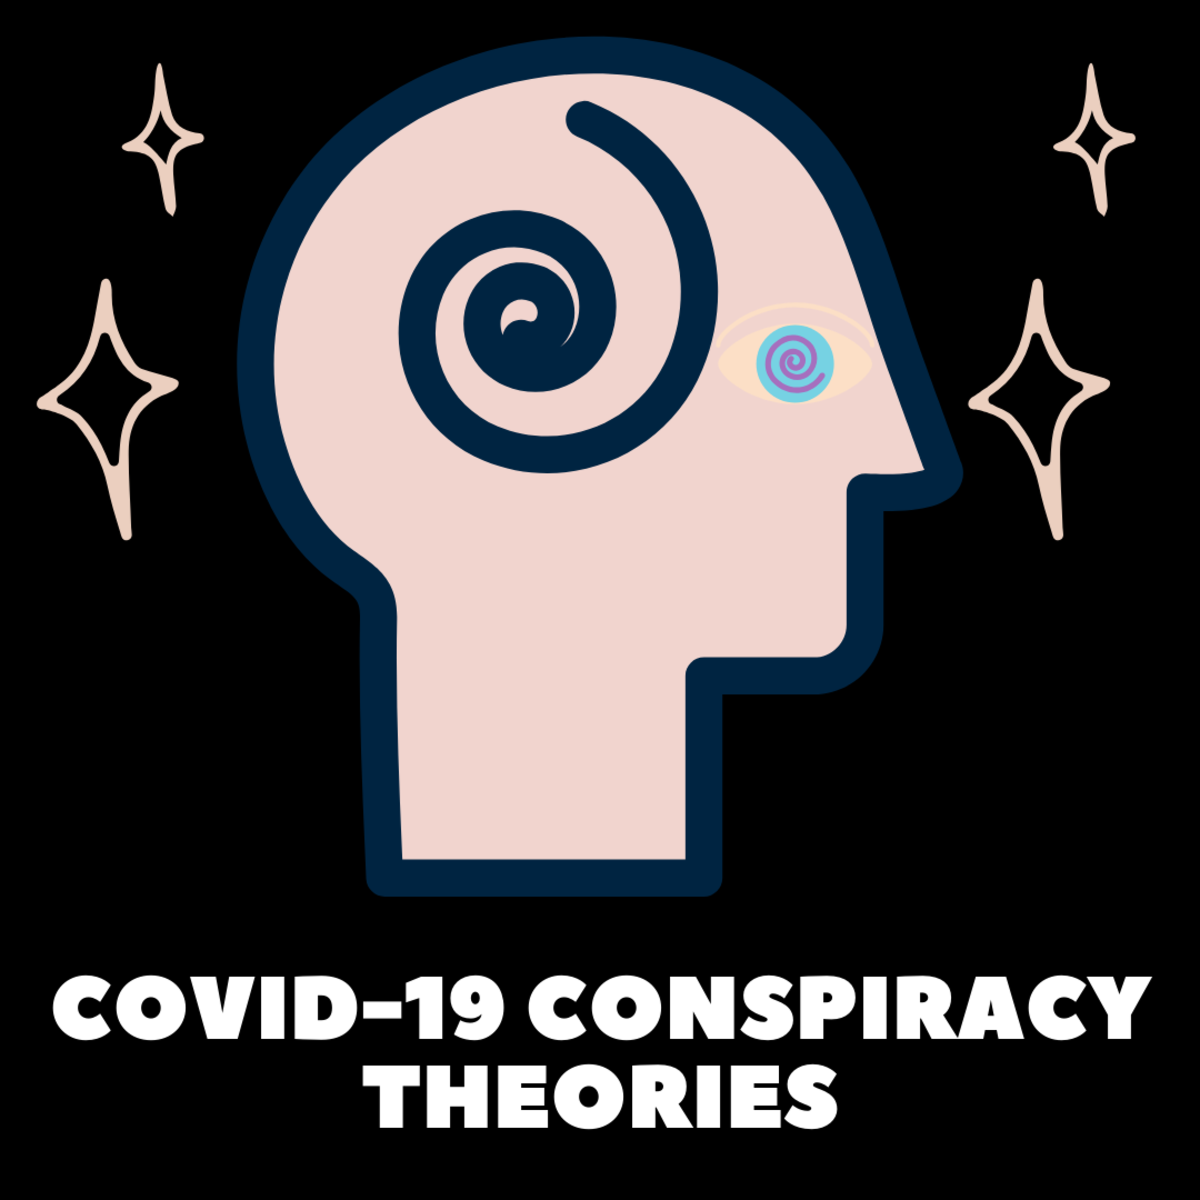 Covid-19 Conspiracy Theories and Why They're not True